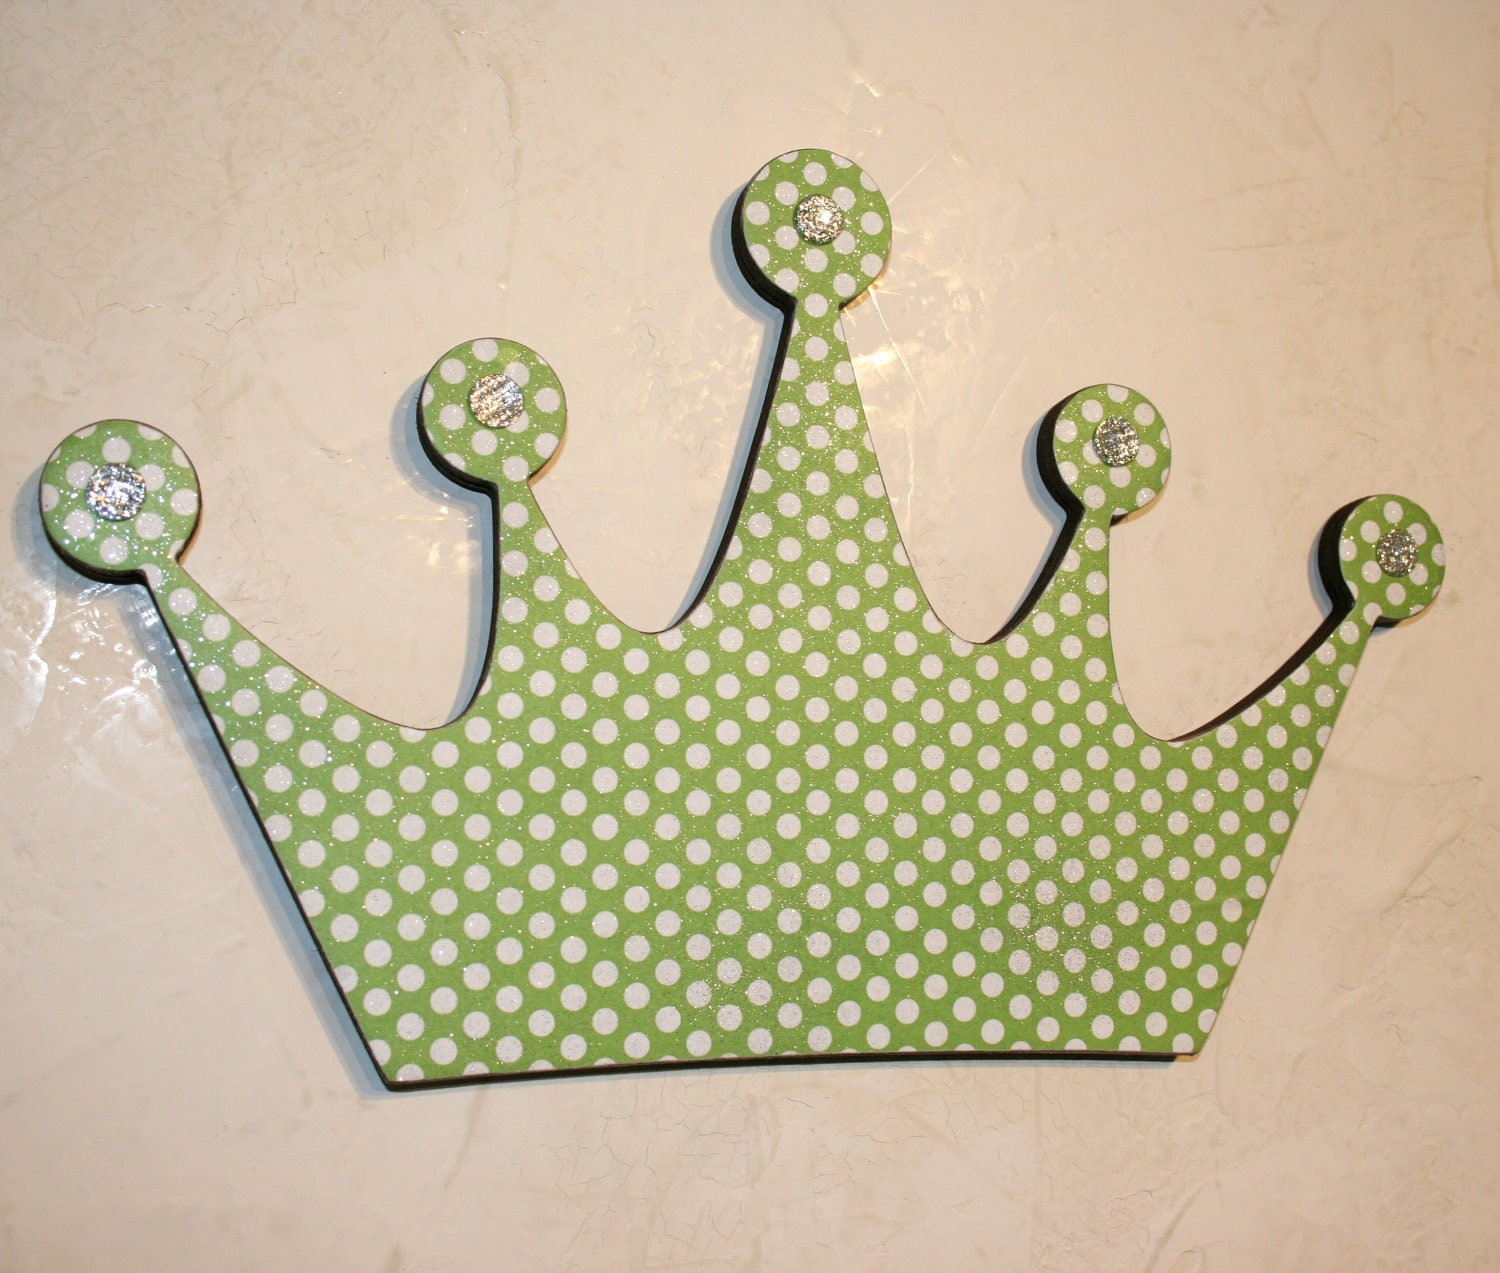 Baby Crown Wall Decor : Princess crown wall decor green by finchnwillowboutique